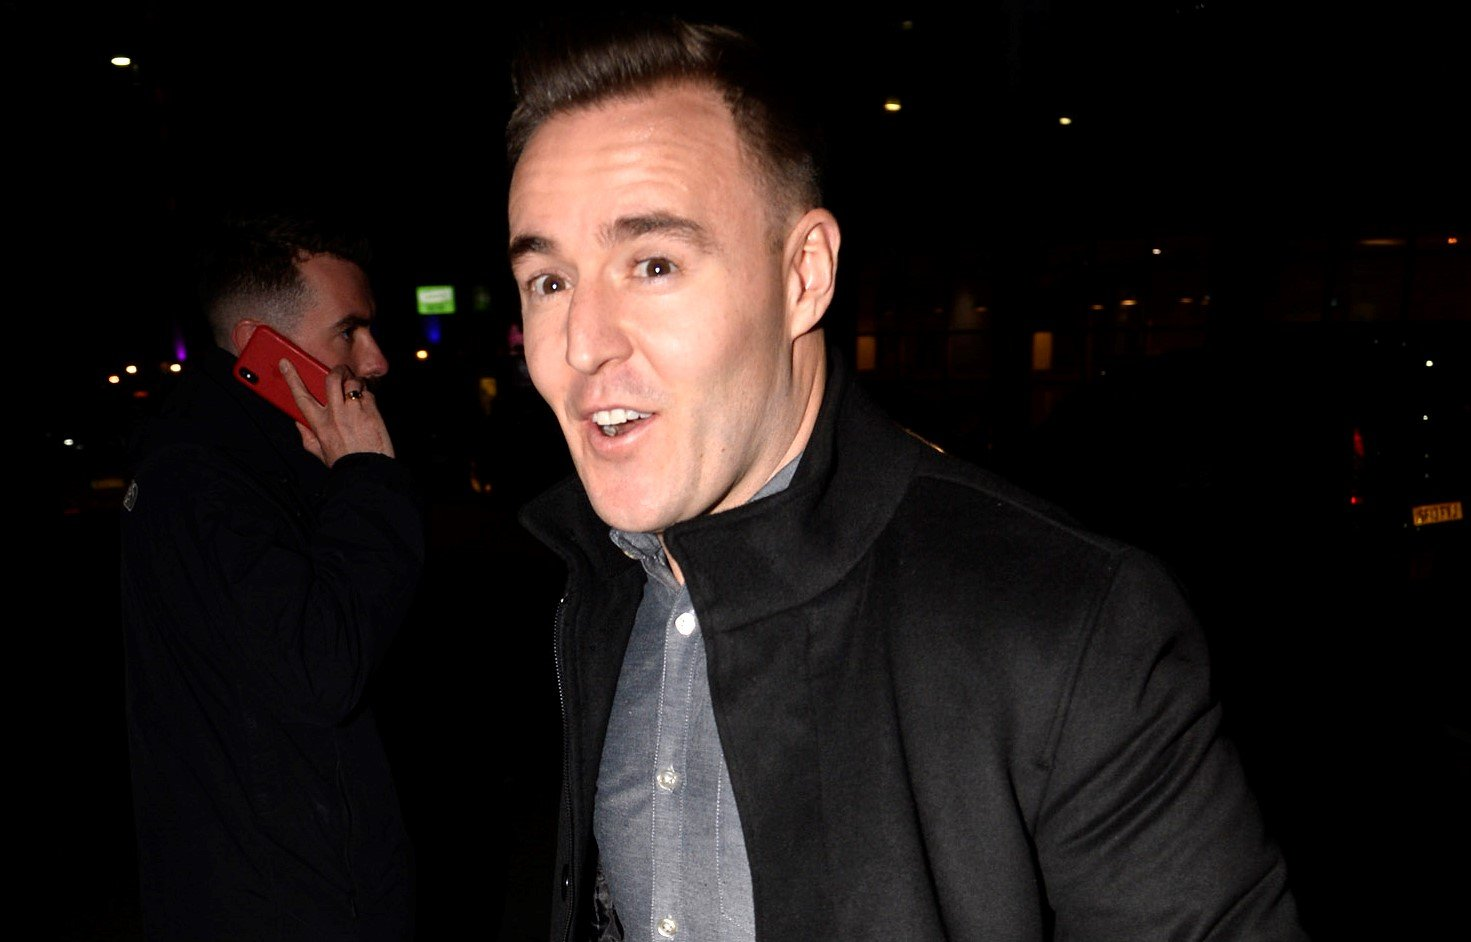 Corrie's Alan Halsall trolled by mates who say his knee 'looks like horror doll Chucky'